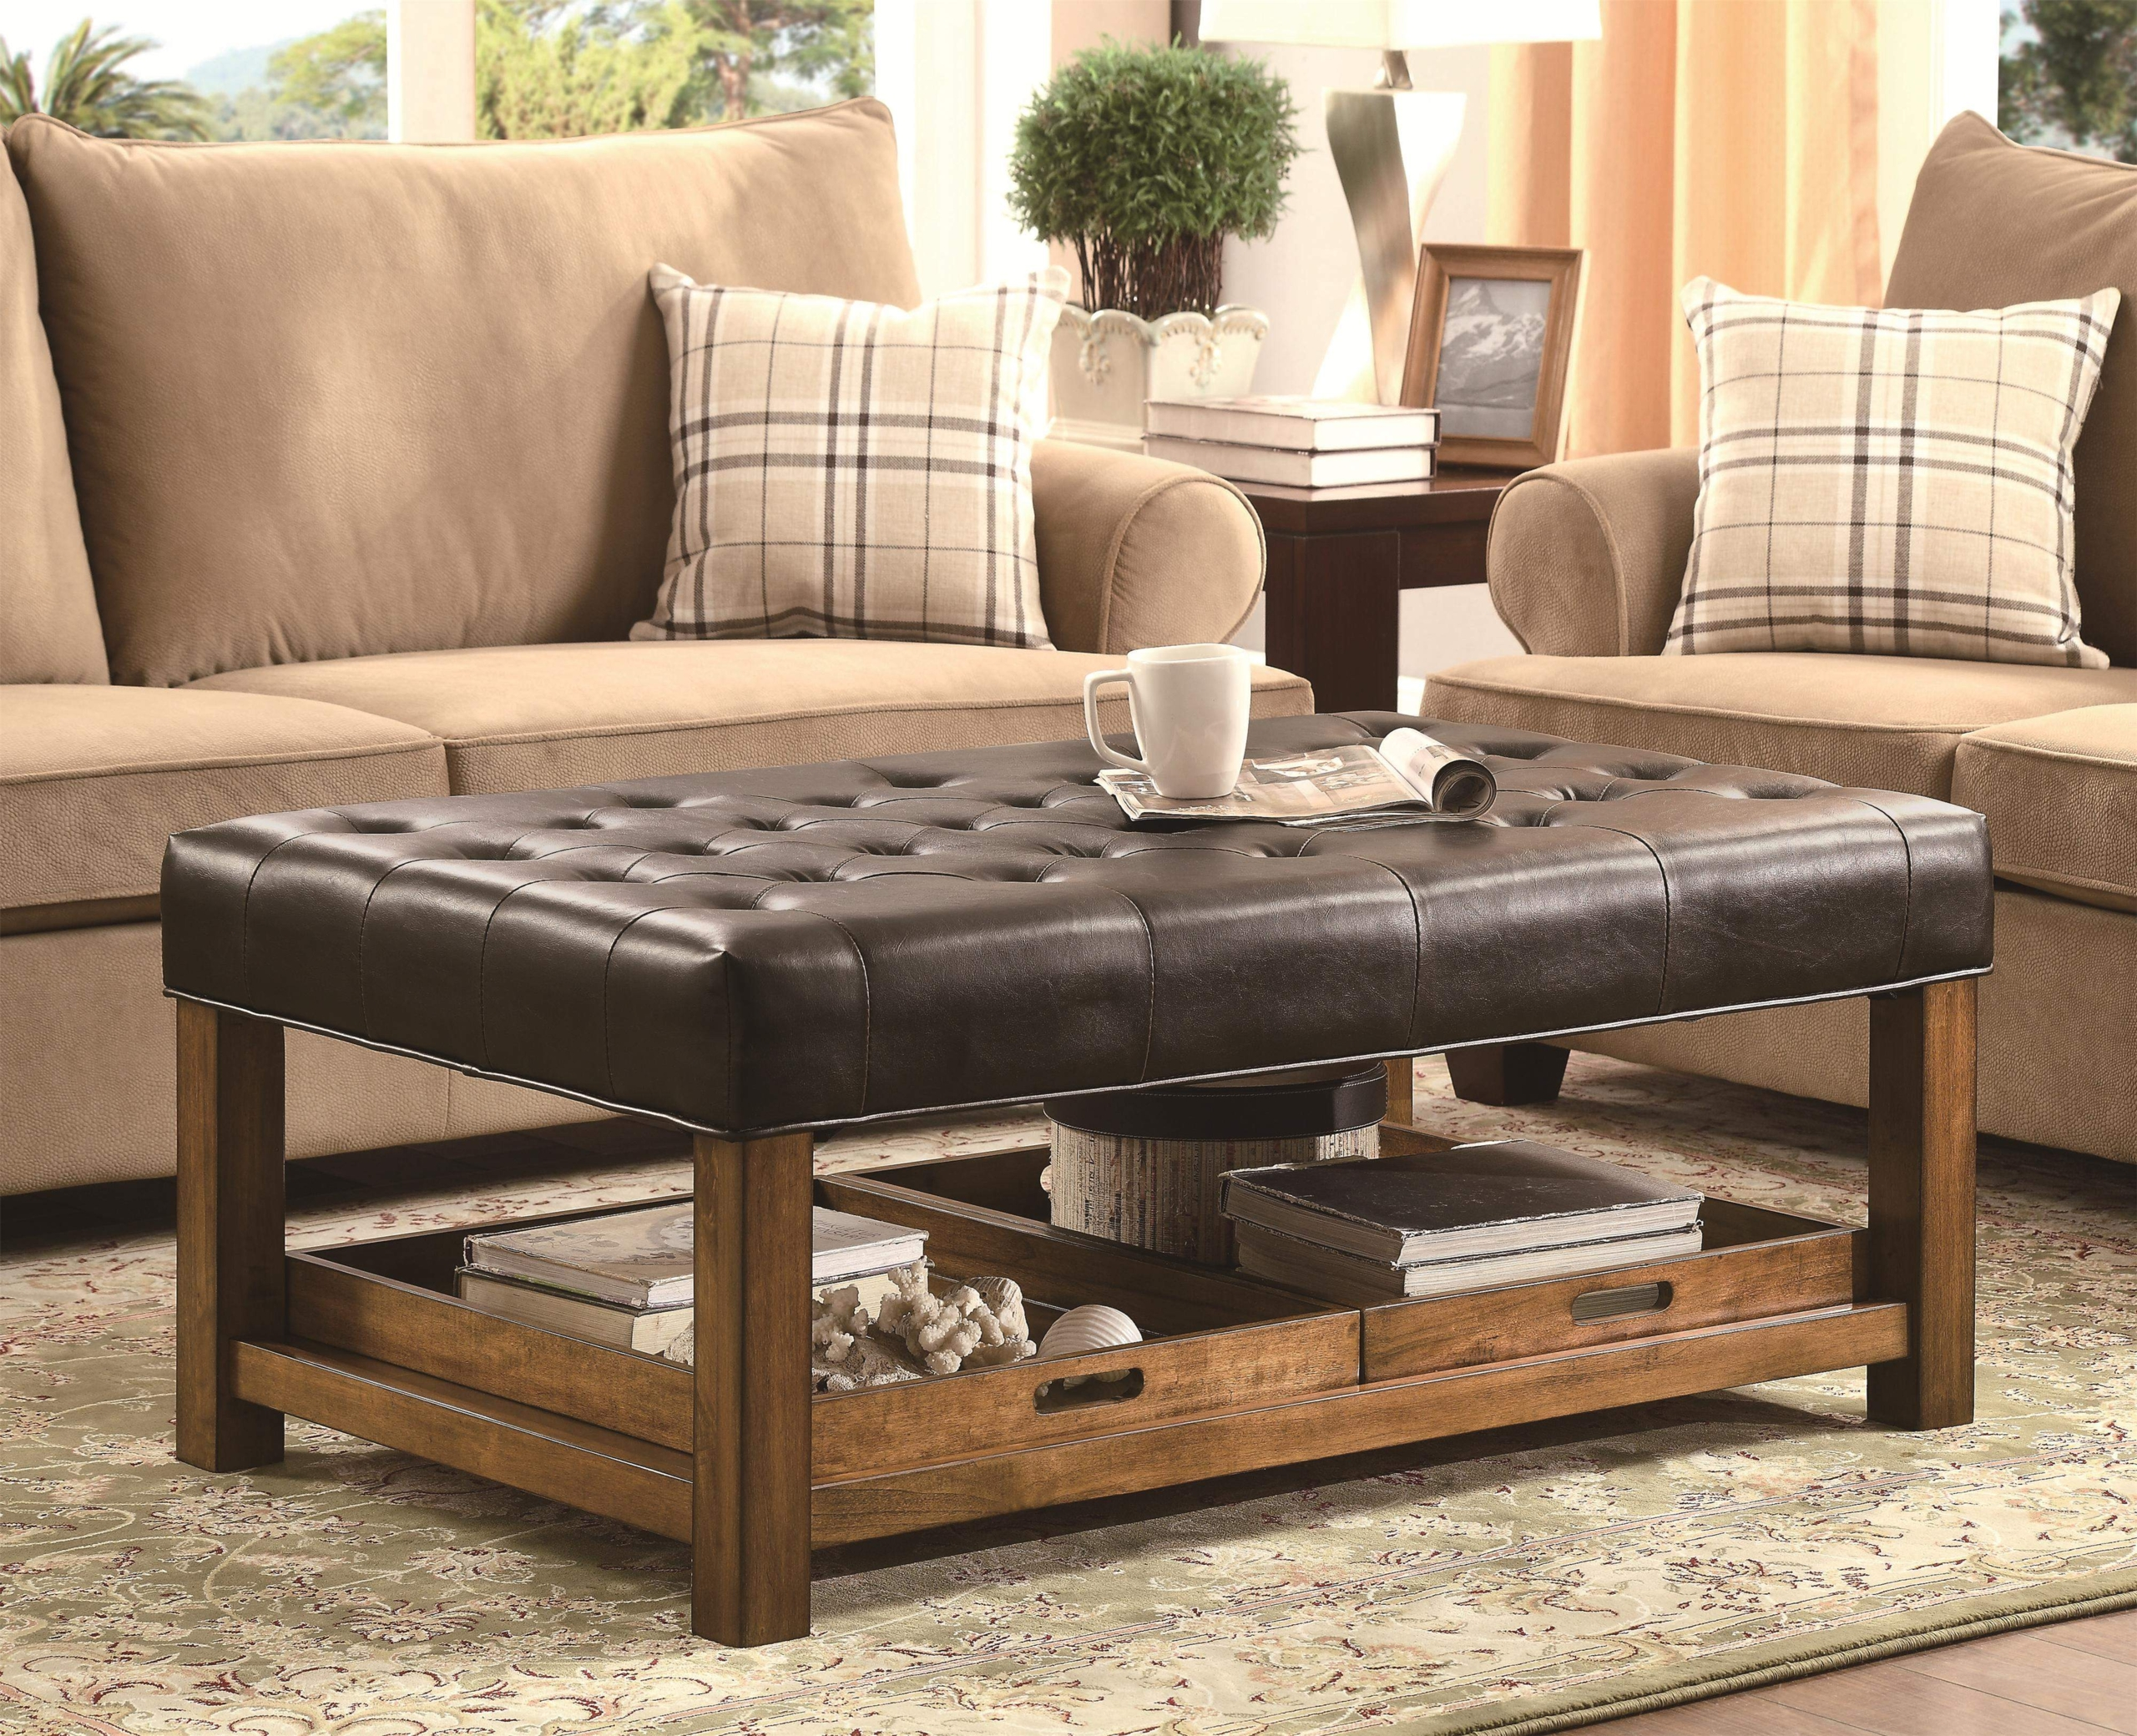 Attirant Leather Tufted Ottoman Coffee Table   Foter